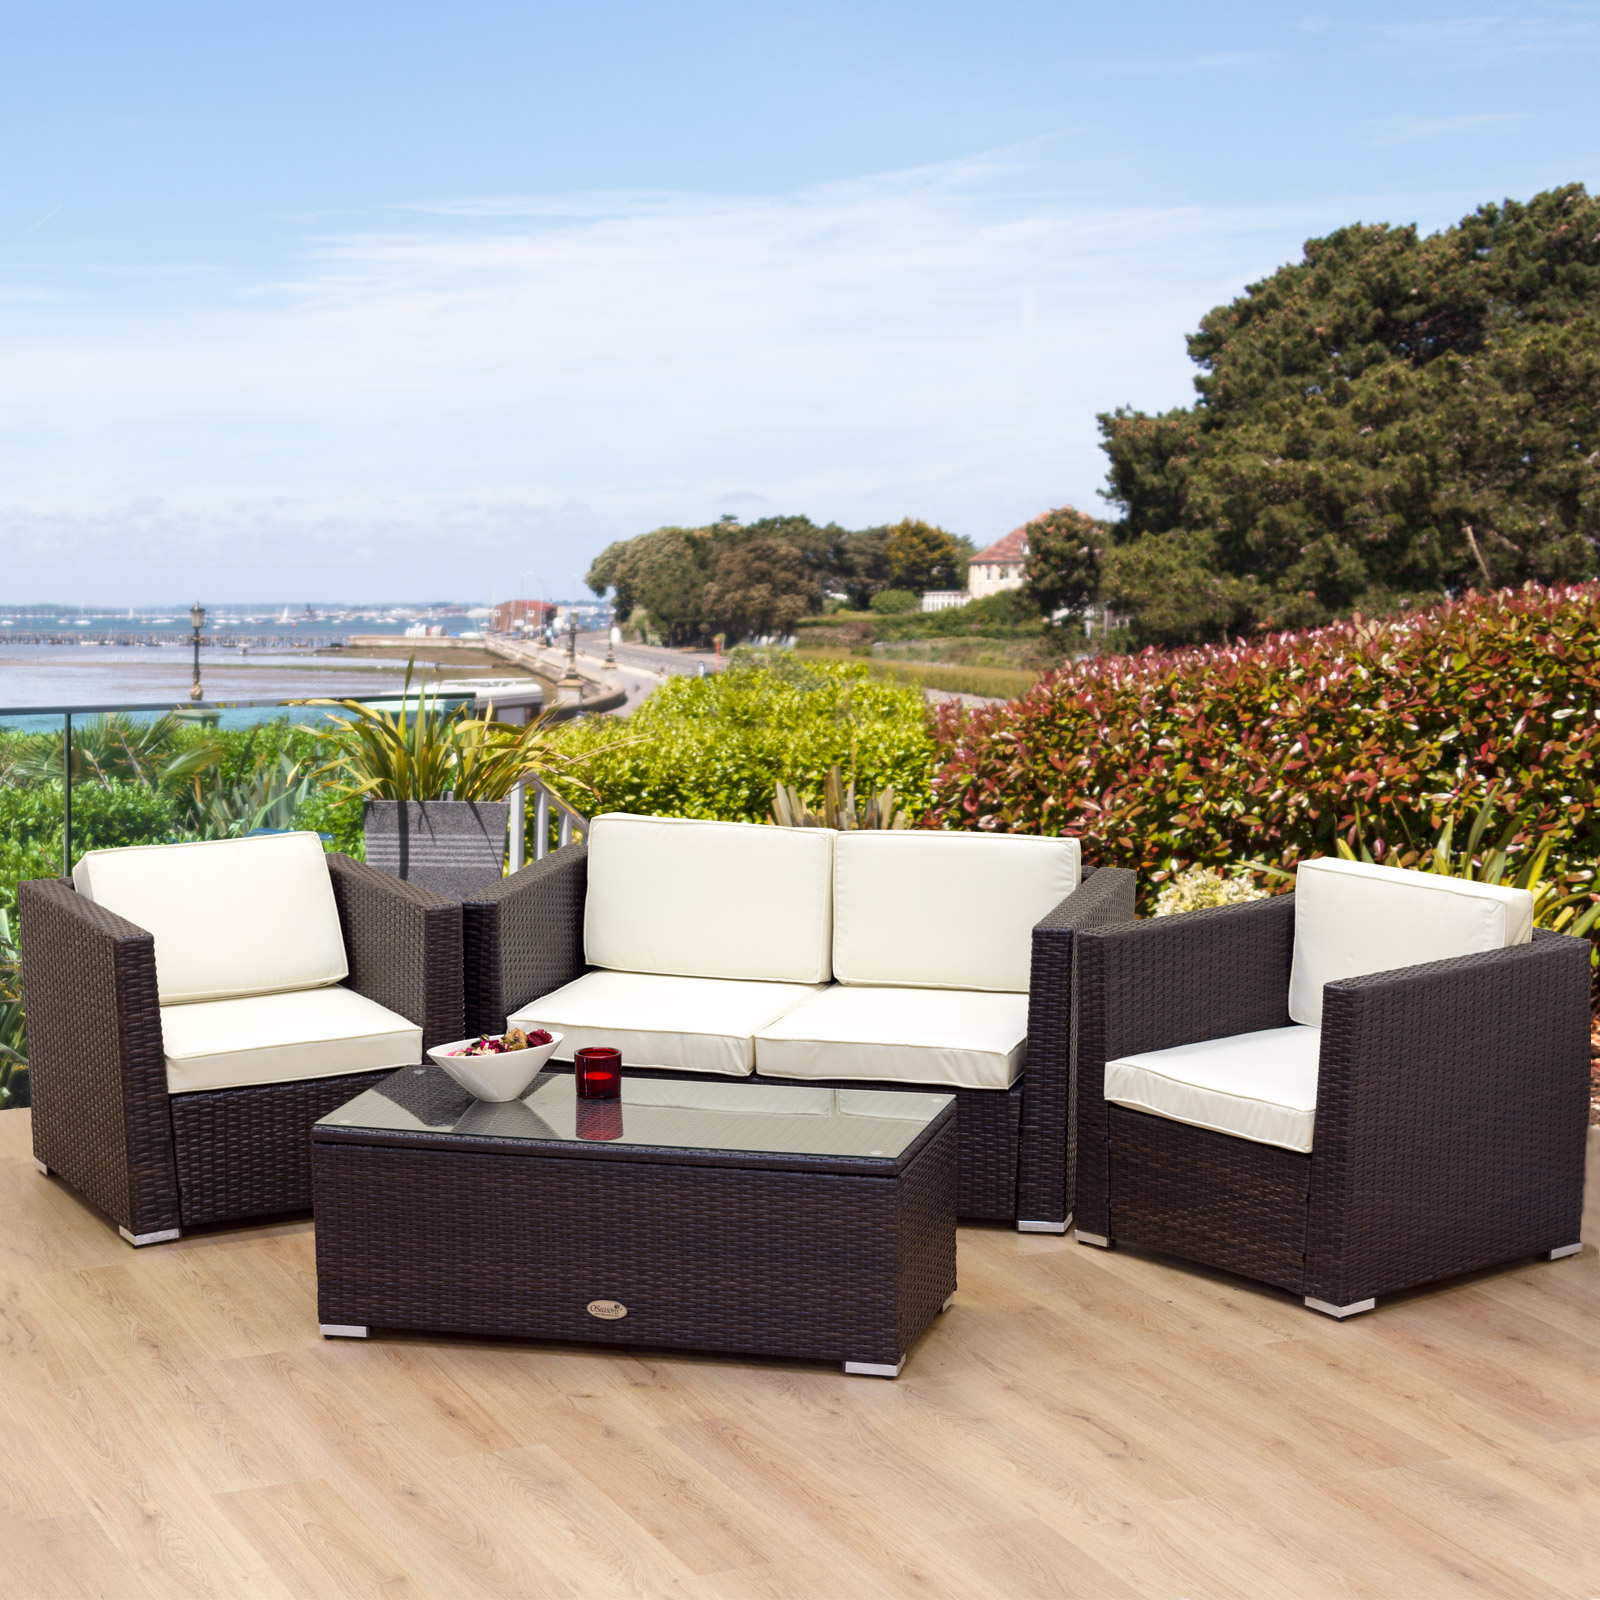 Awesome rattan garden furniture hgnv com for Outdoor wicker furniture